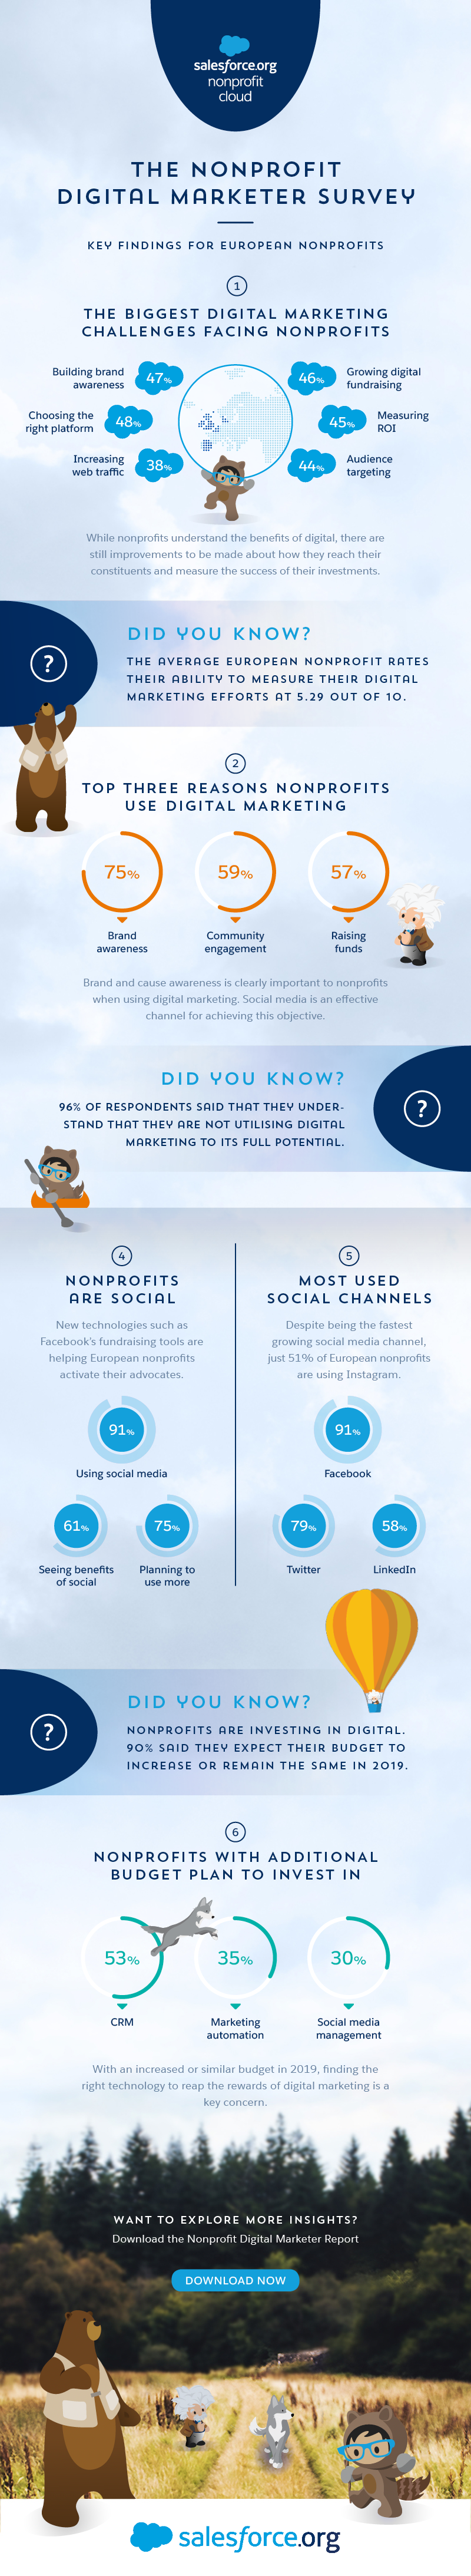 The Nonprofit Digital Marketer Survey Infographic